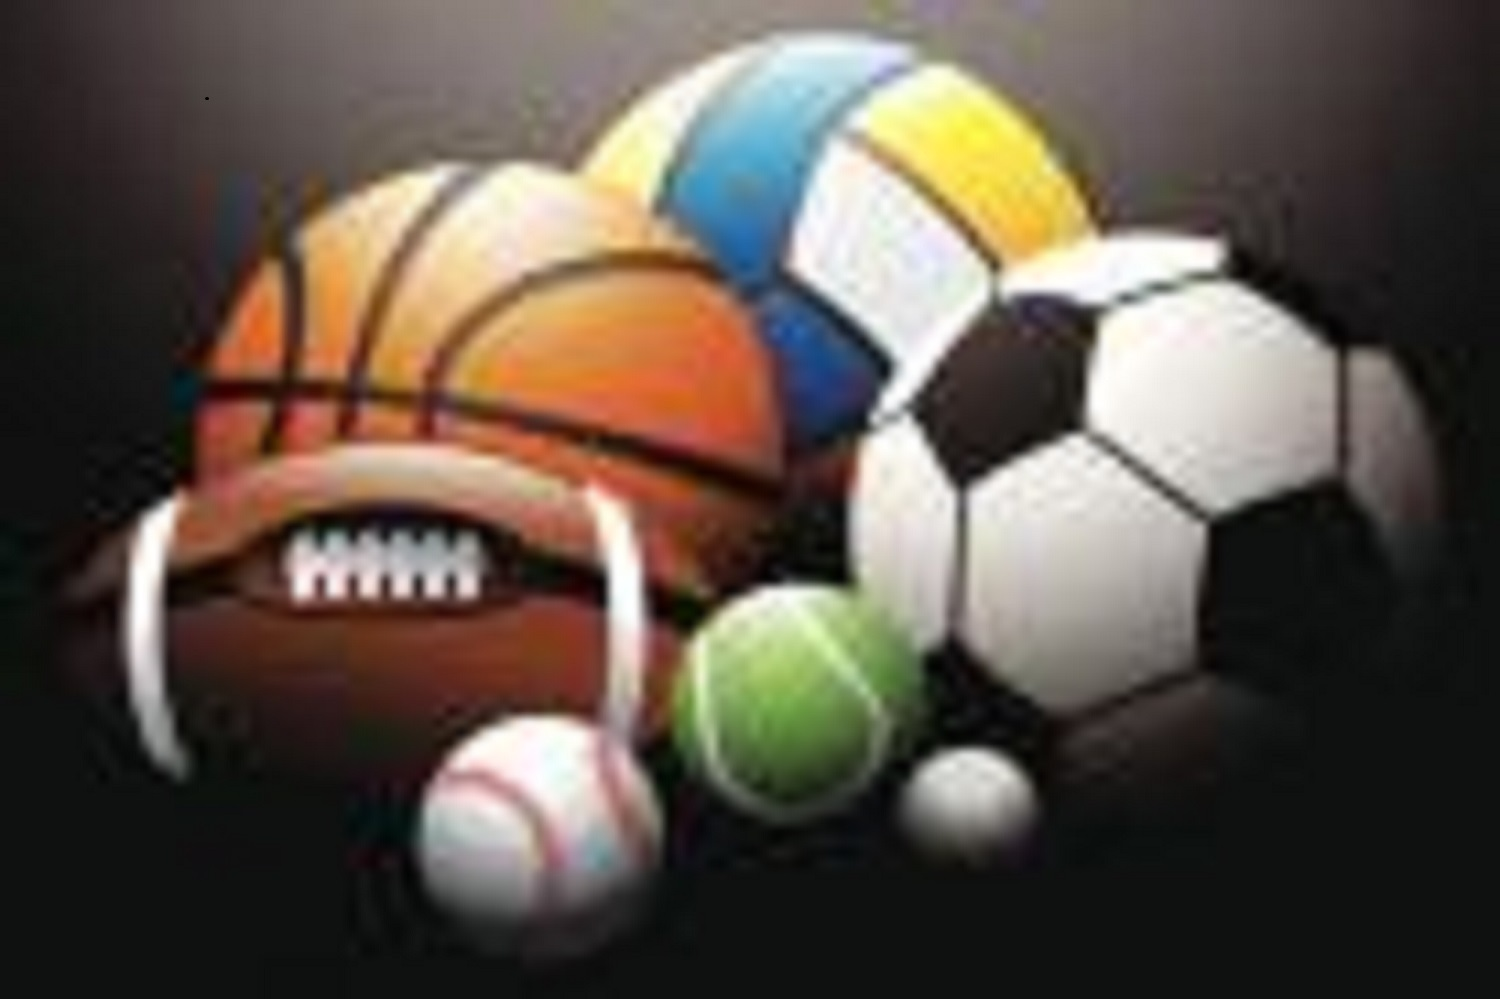 Ludlow Advertiser region results for weekend of December 5/6, 2015